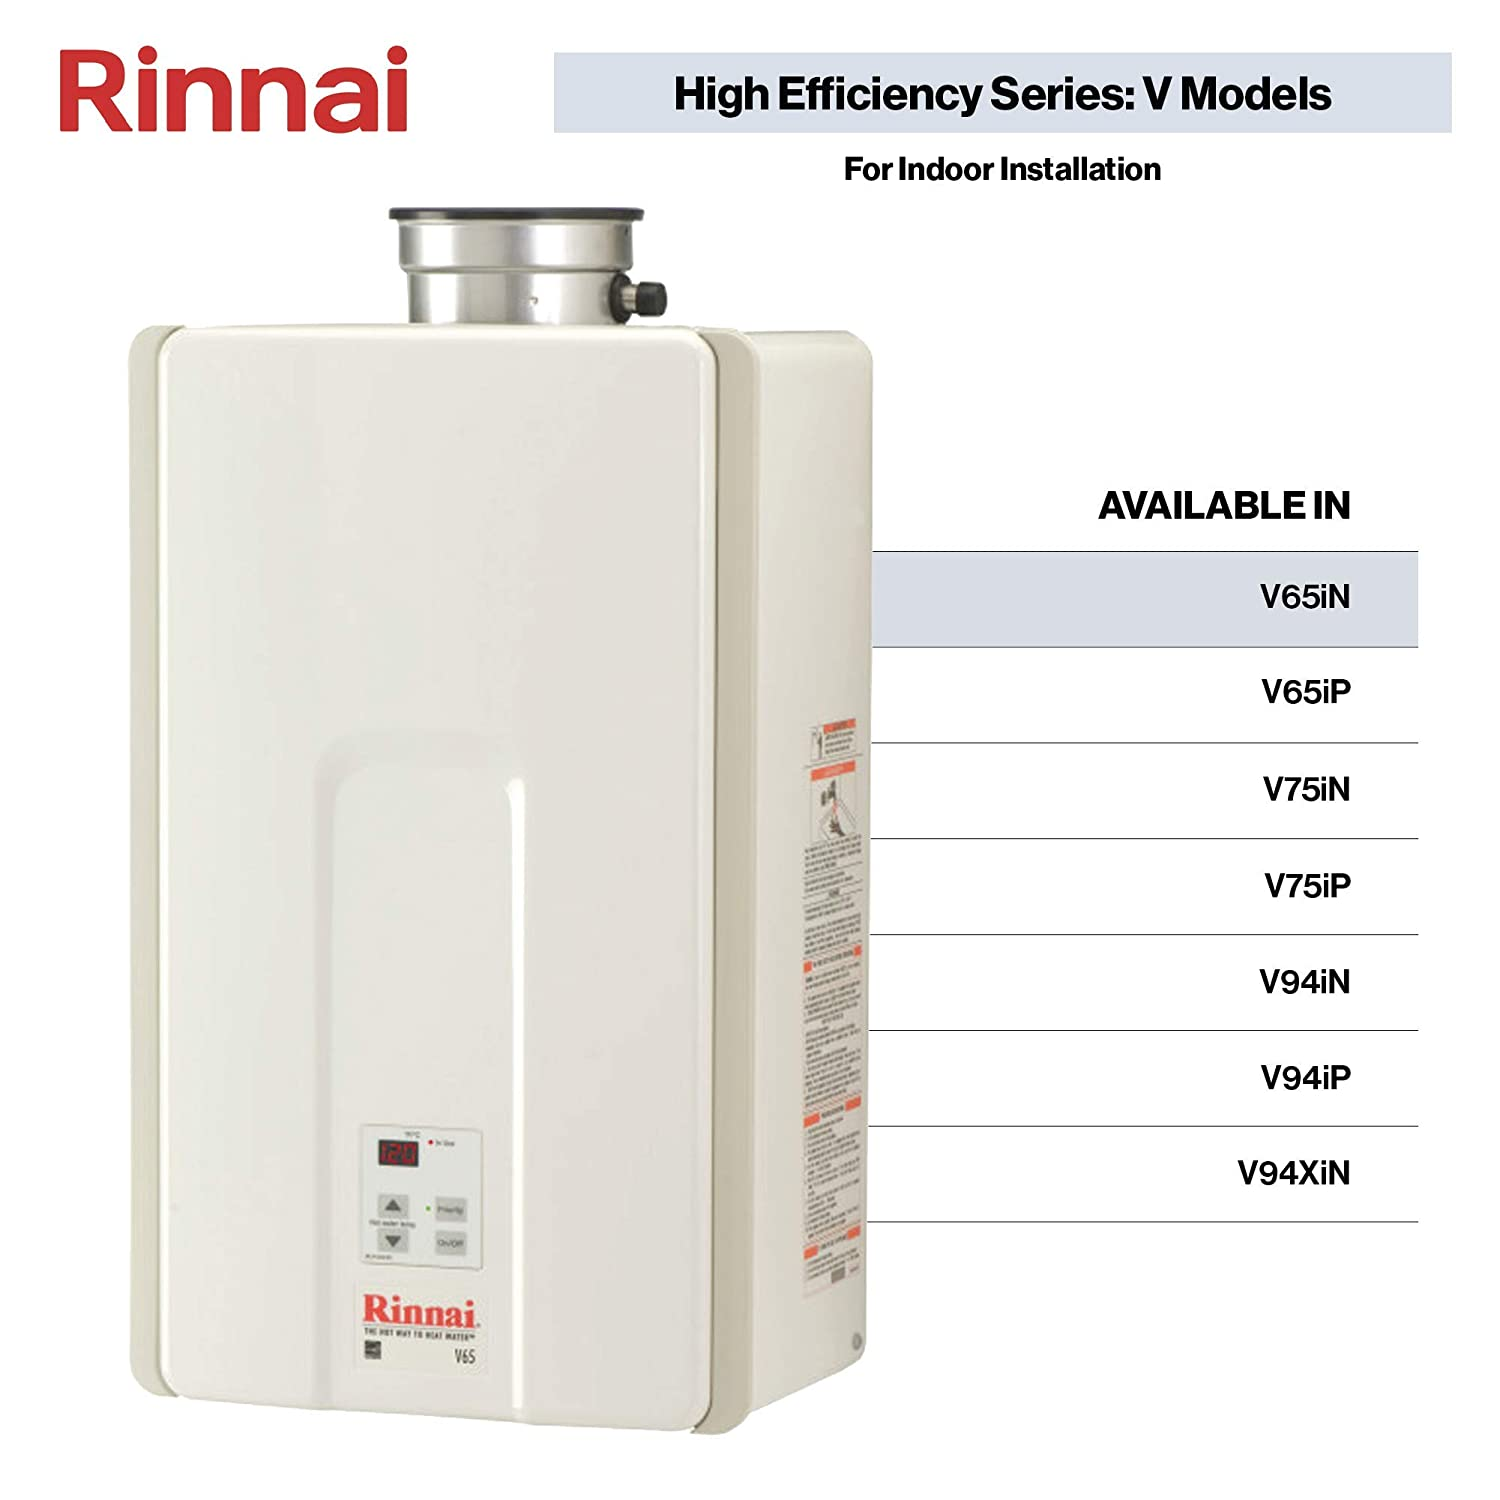 Rinnai V Series HE Tankless Hot Water Heater: Indoor Installation on electronic circuit diagrams, engine diagrams, battery diagrams, hvac diagrams, pinout diagrams, electrical diagrams, troubleshooting diagrams, series and parallel circuits diagrams, honda motorcycle repair diagrams, friendship bracelet diagrams, smart car diagrams, internet of things diagrams, sincgars radio configurations diagrams, lighting diagrams, motor diagrams, led circuit diagrams, gmc fuse box diagrams, transformer diagrams, switch diagrams,